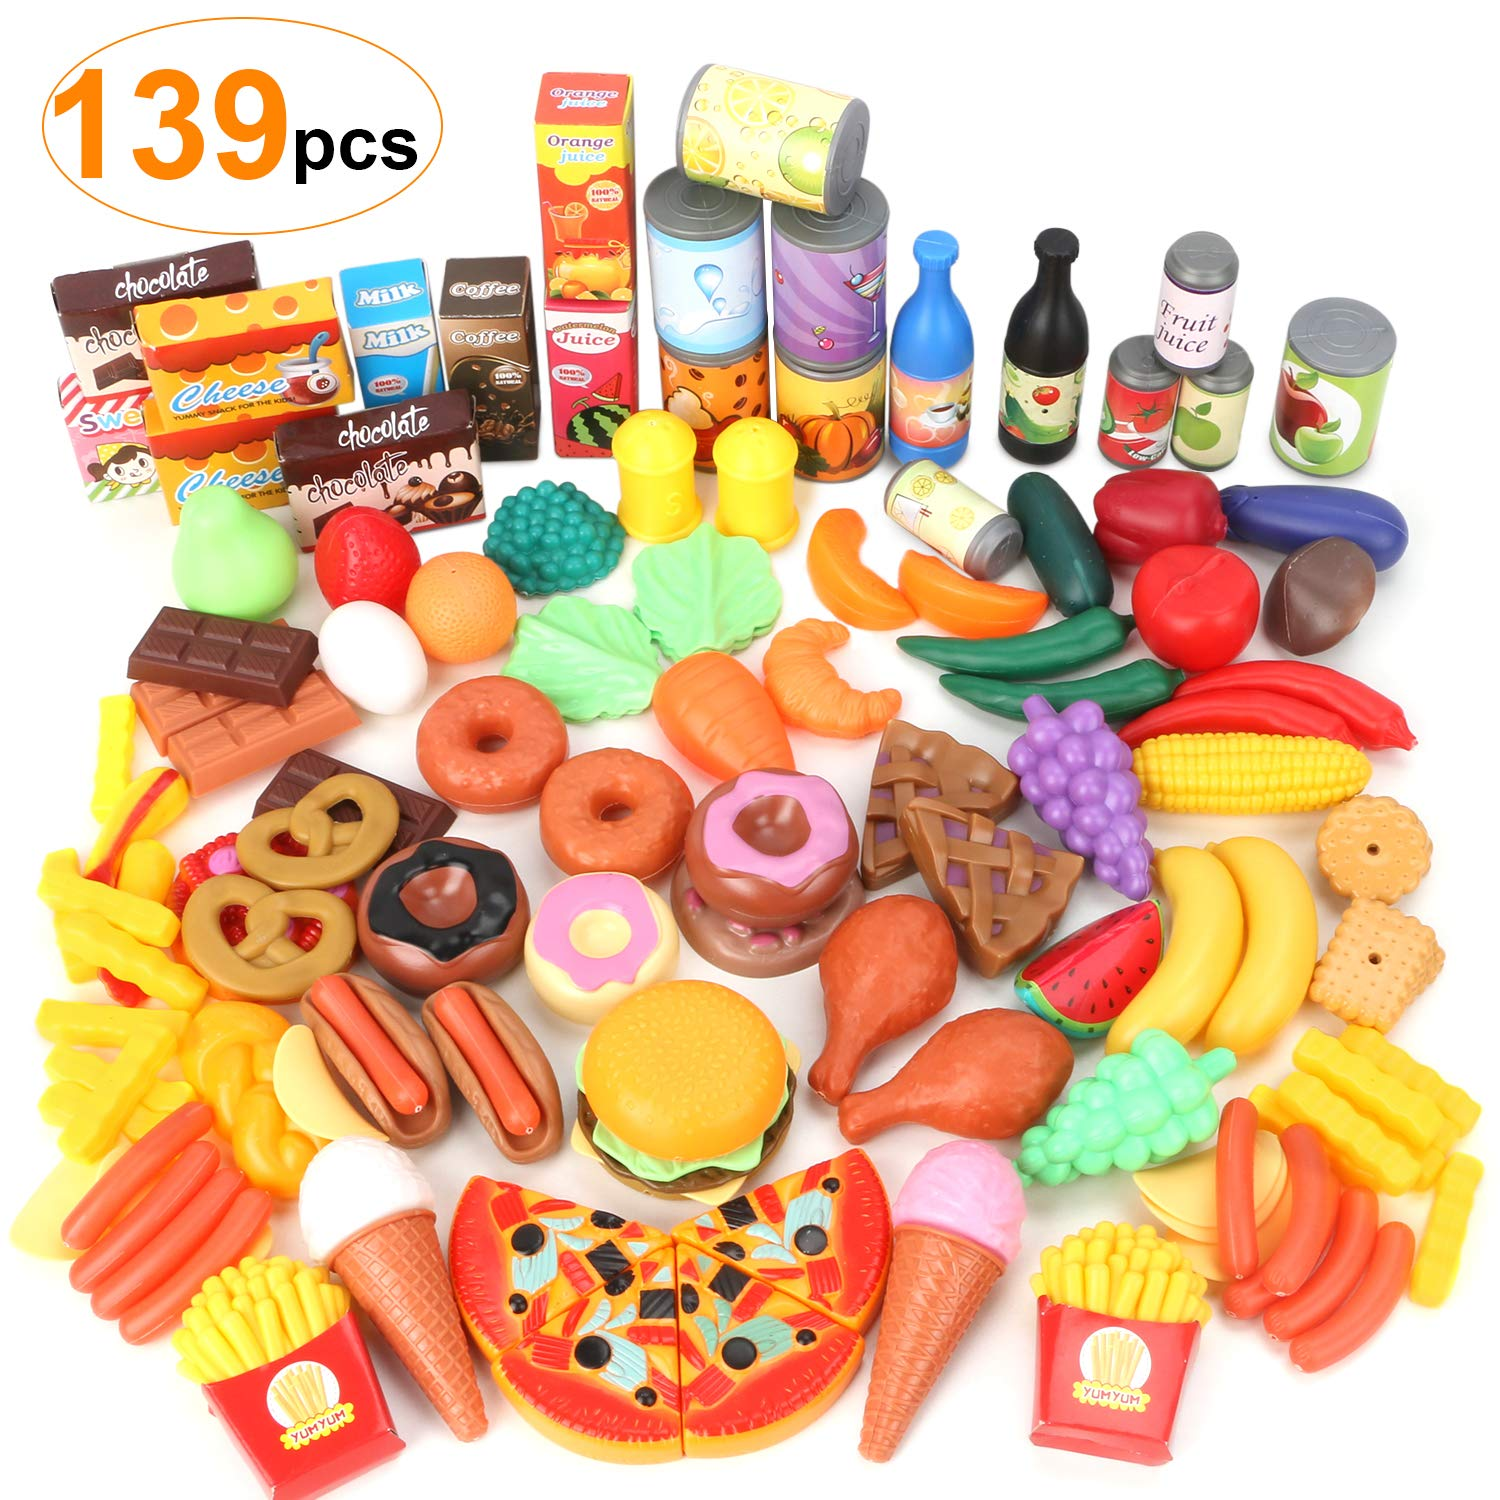 WOSTOO Play Food Set, 139 Pieces Play Kitchen Set for Kids, Pretend Food for Toddlers, Beautiful Toy Food Assortment, Party Favor Supplies, Holiday by WOSTOO